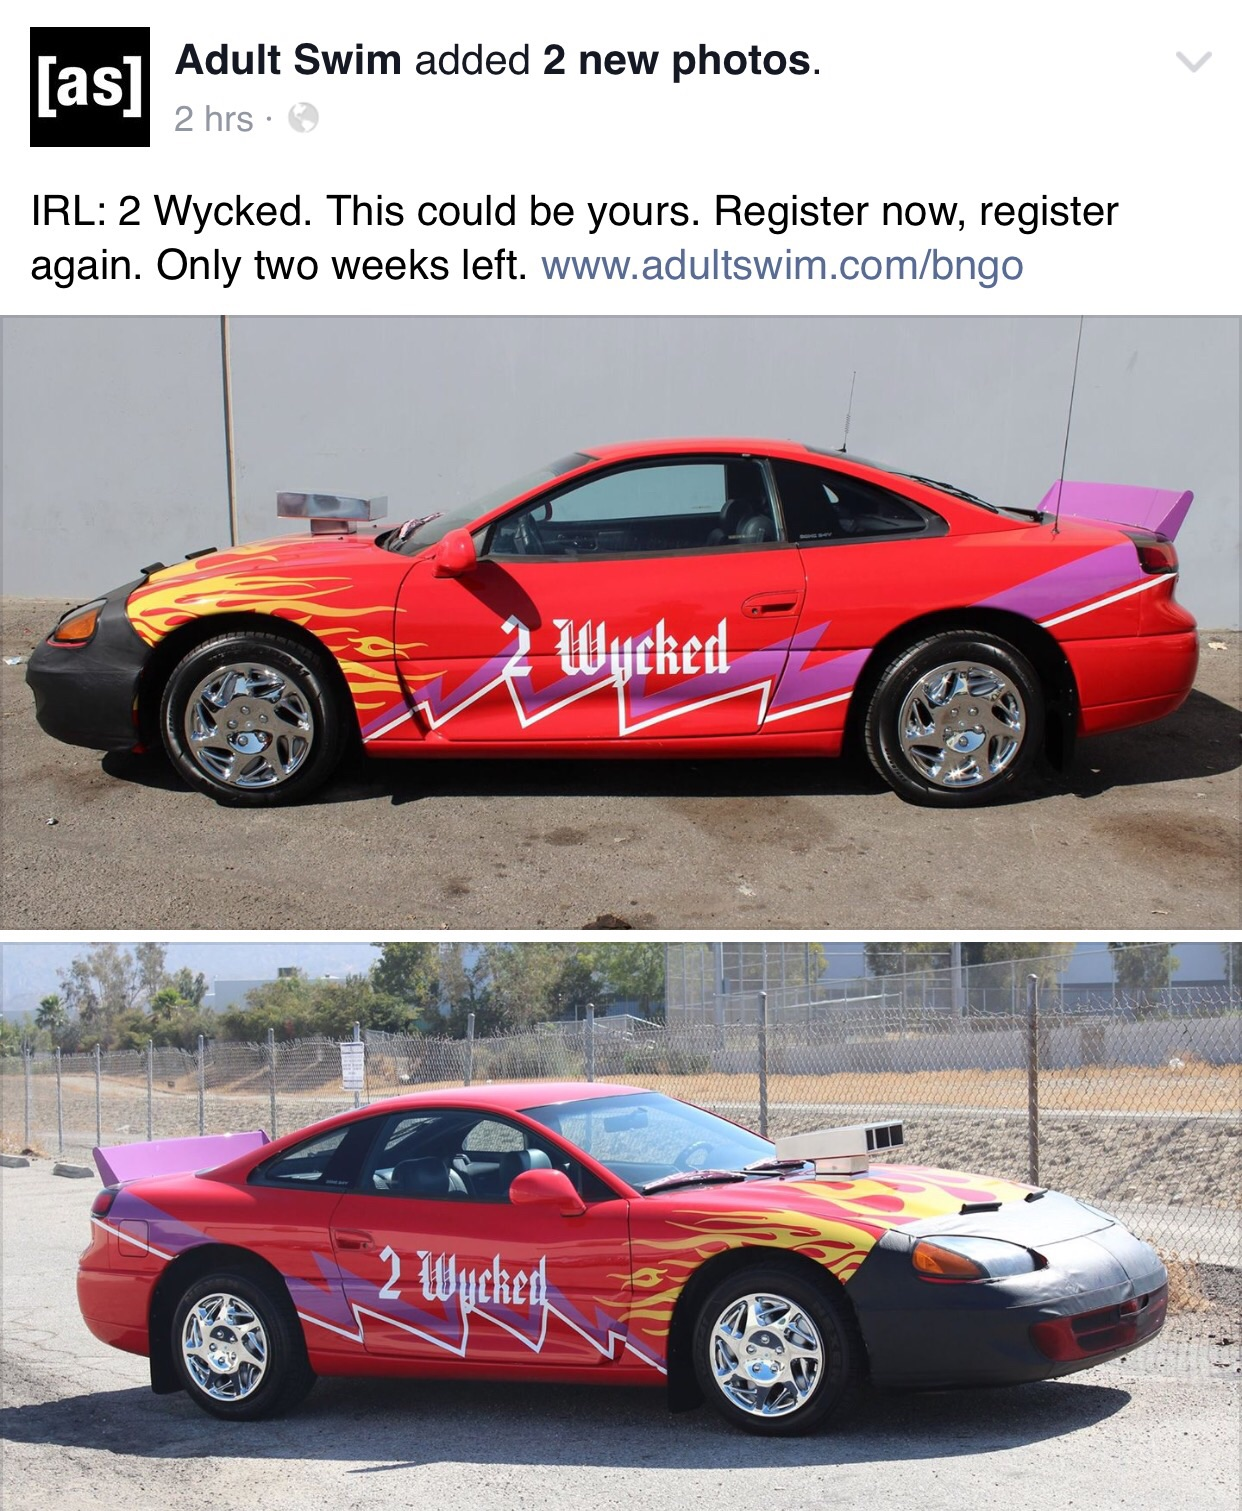 Anyone A ATHF Fan? Love 2 WYCKED? Or Wants A Free Car? You